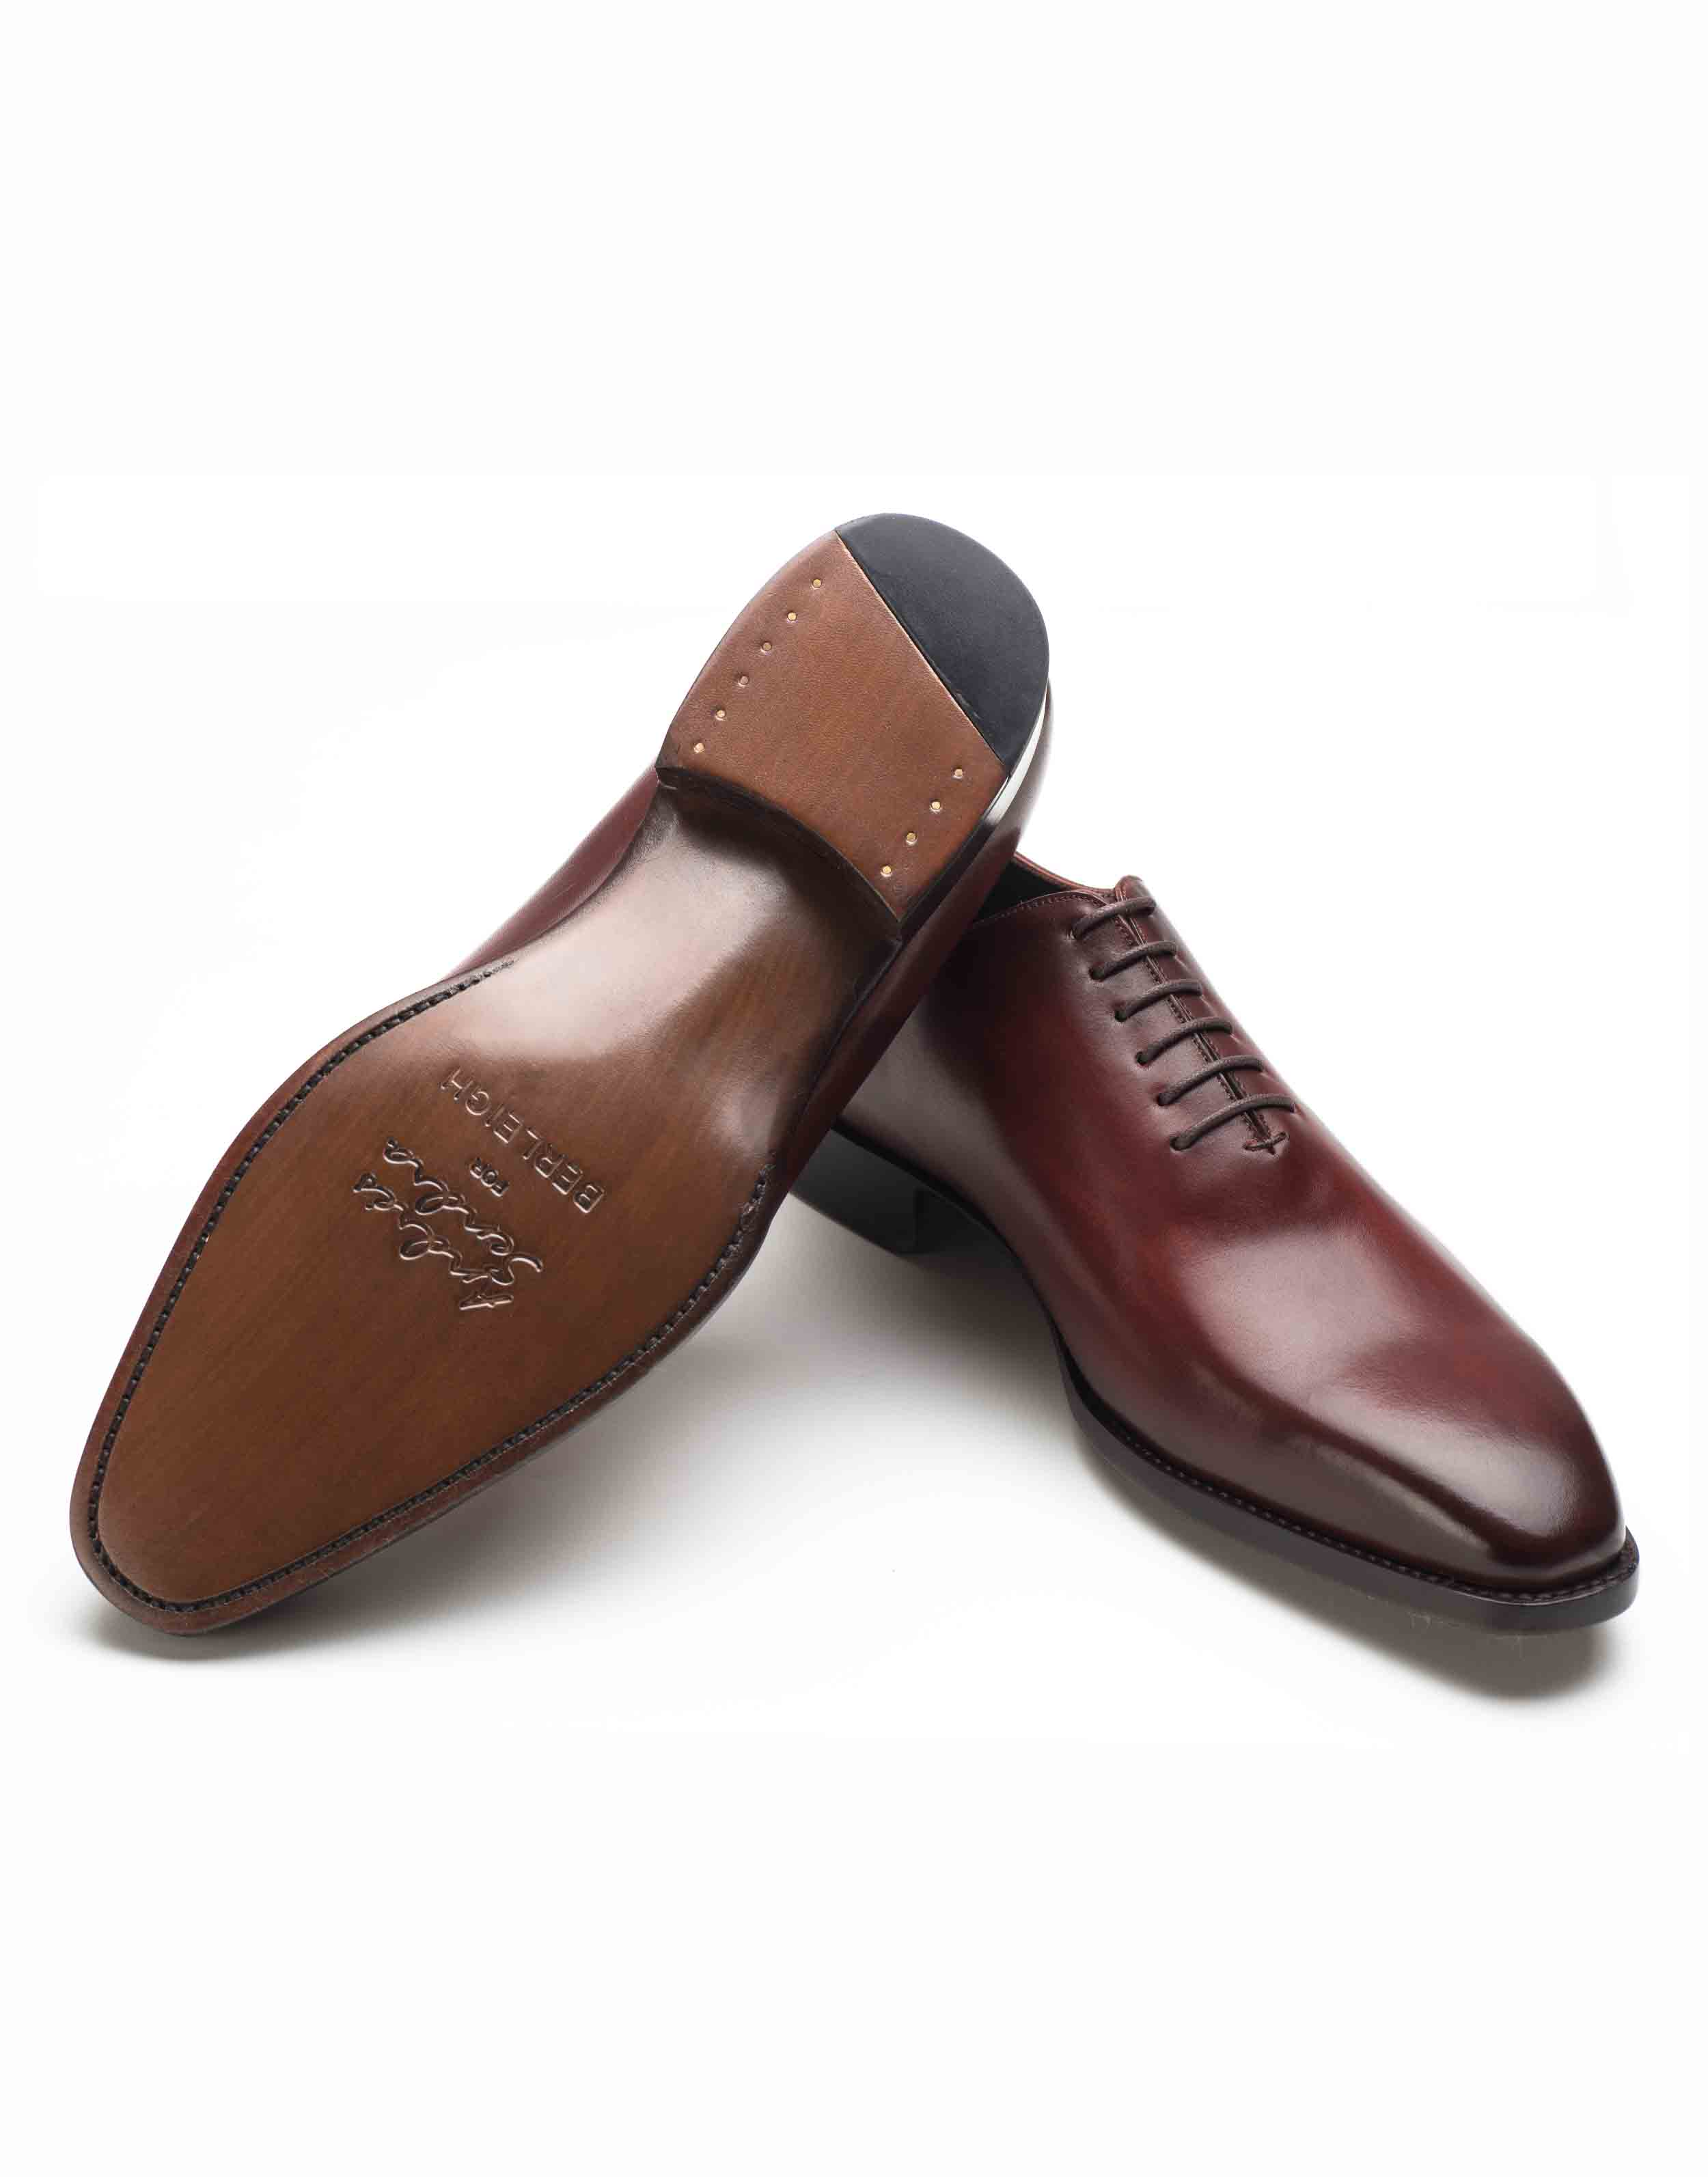 PLAIN TOE BURGUNDY OXFORD SHOE3